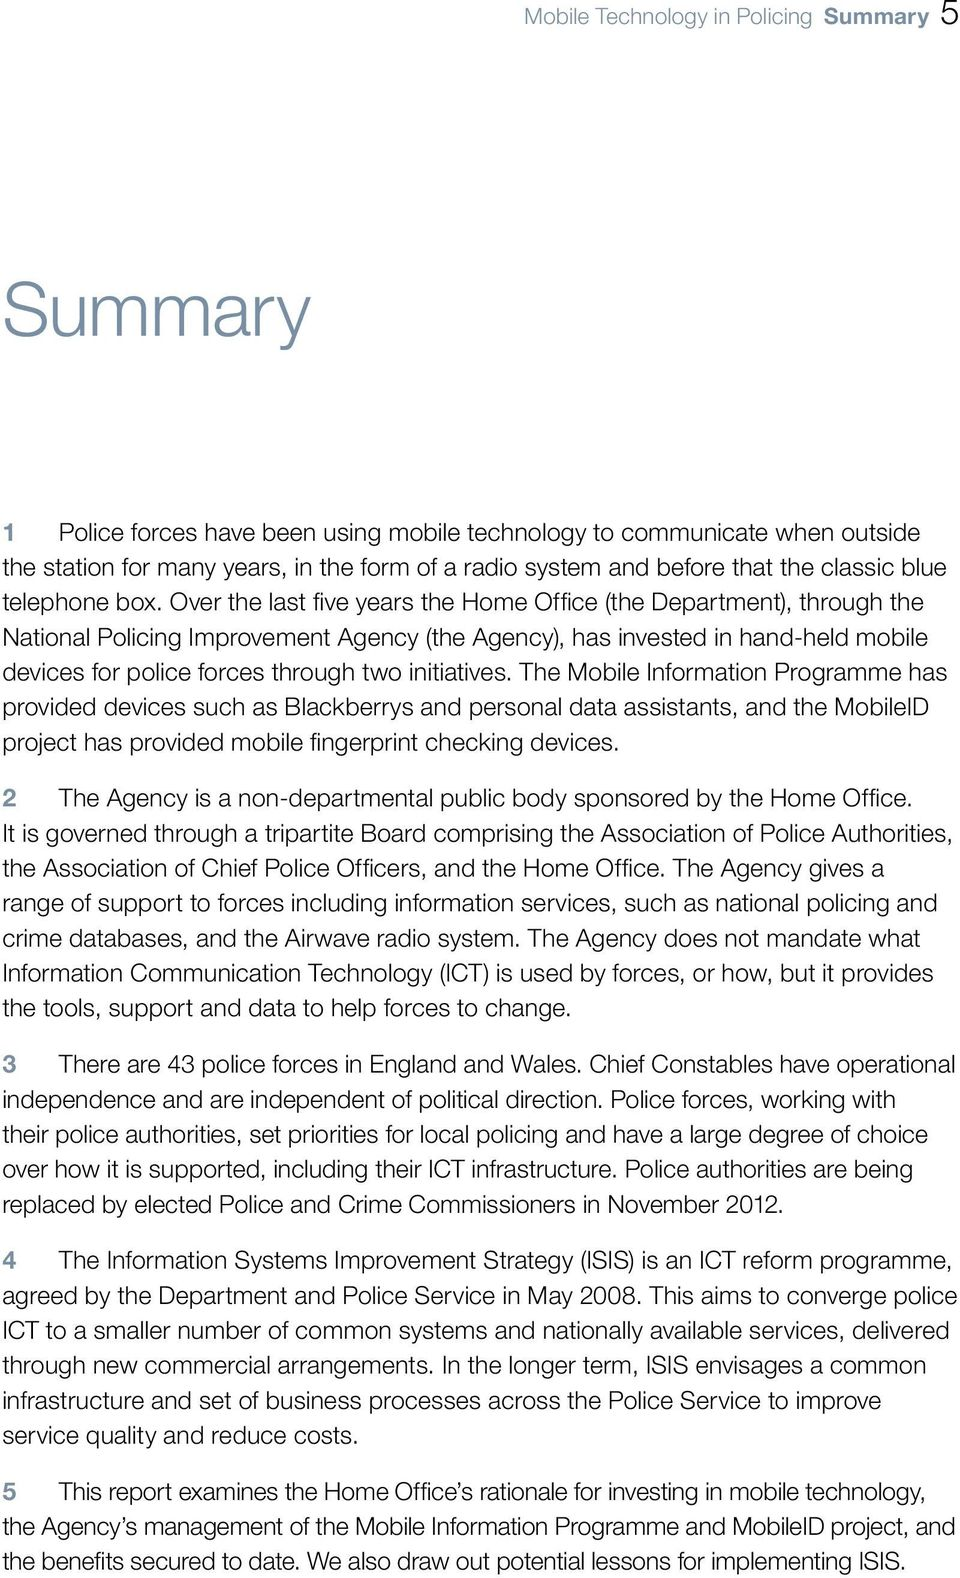 Over the last five years the Home Office (the Department), through the National Policing Improvement Agency (the Agency), has invested in hand-held mobile devices for police forces through two